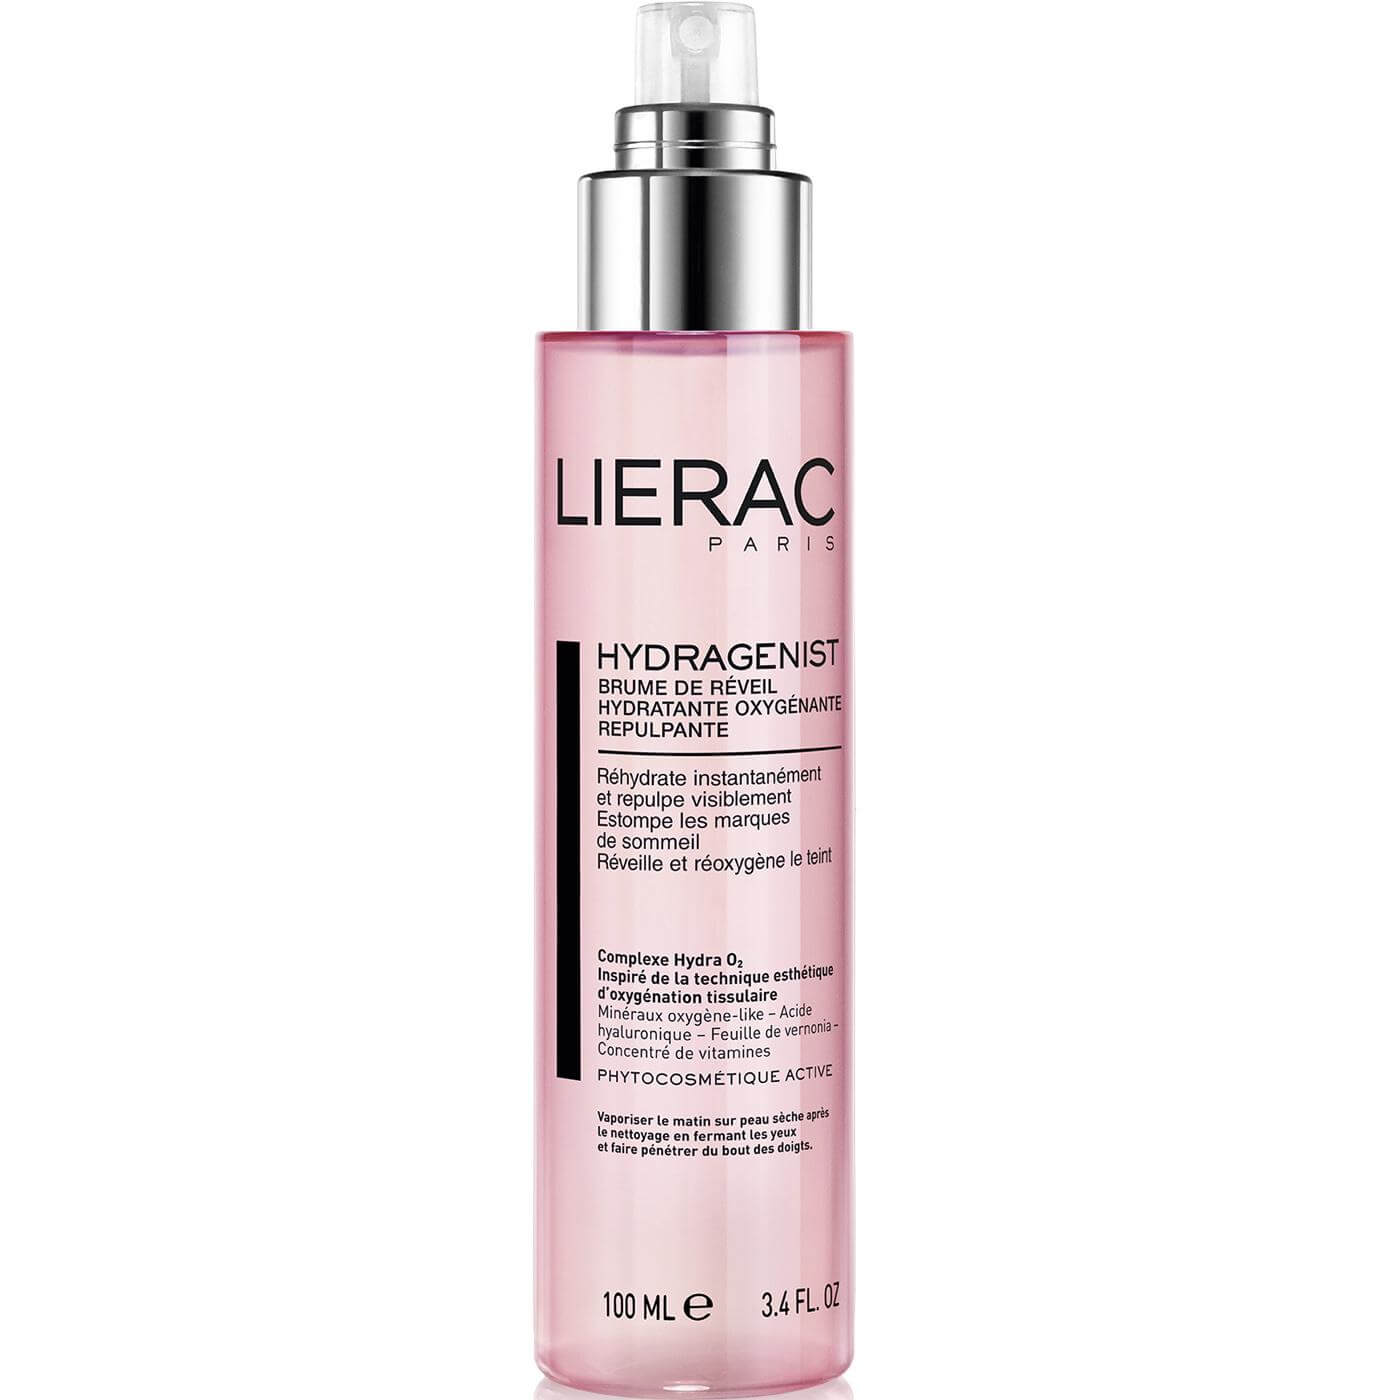 Lierac Hydragenist Morning Moisturizing Mist Oxygenating Replumping Mist Ενυδάτωσης, Οξυγόνωσης & Επαναπύκνωσης 100ml